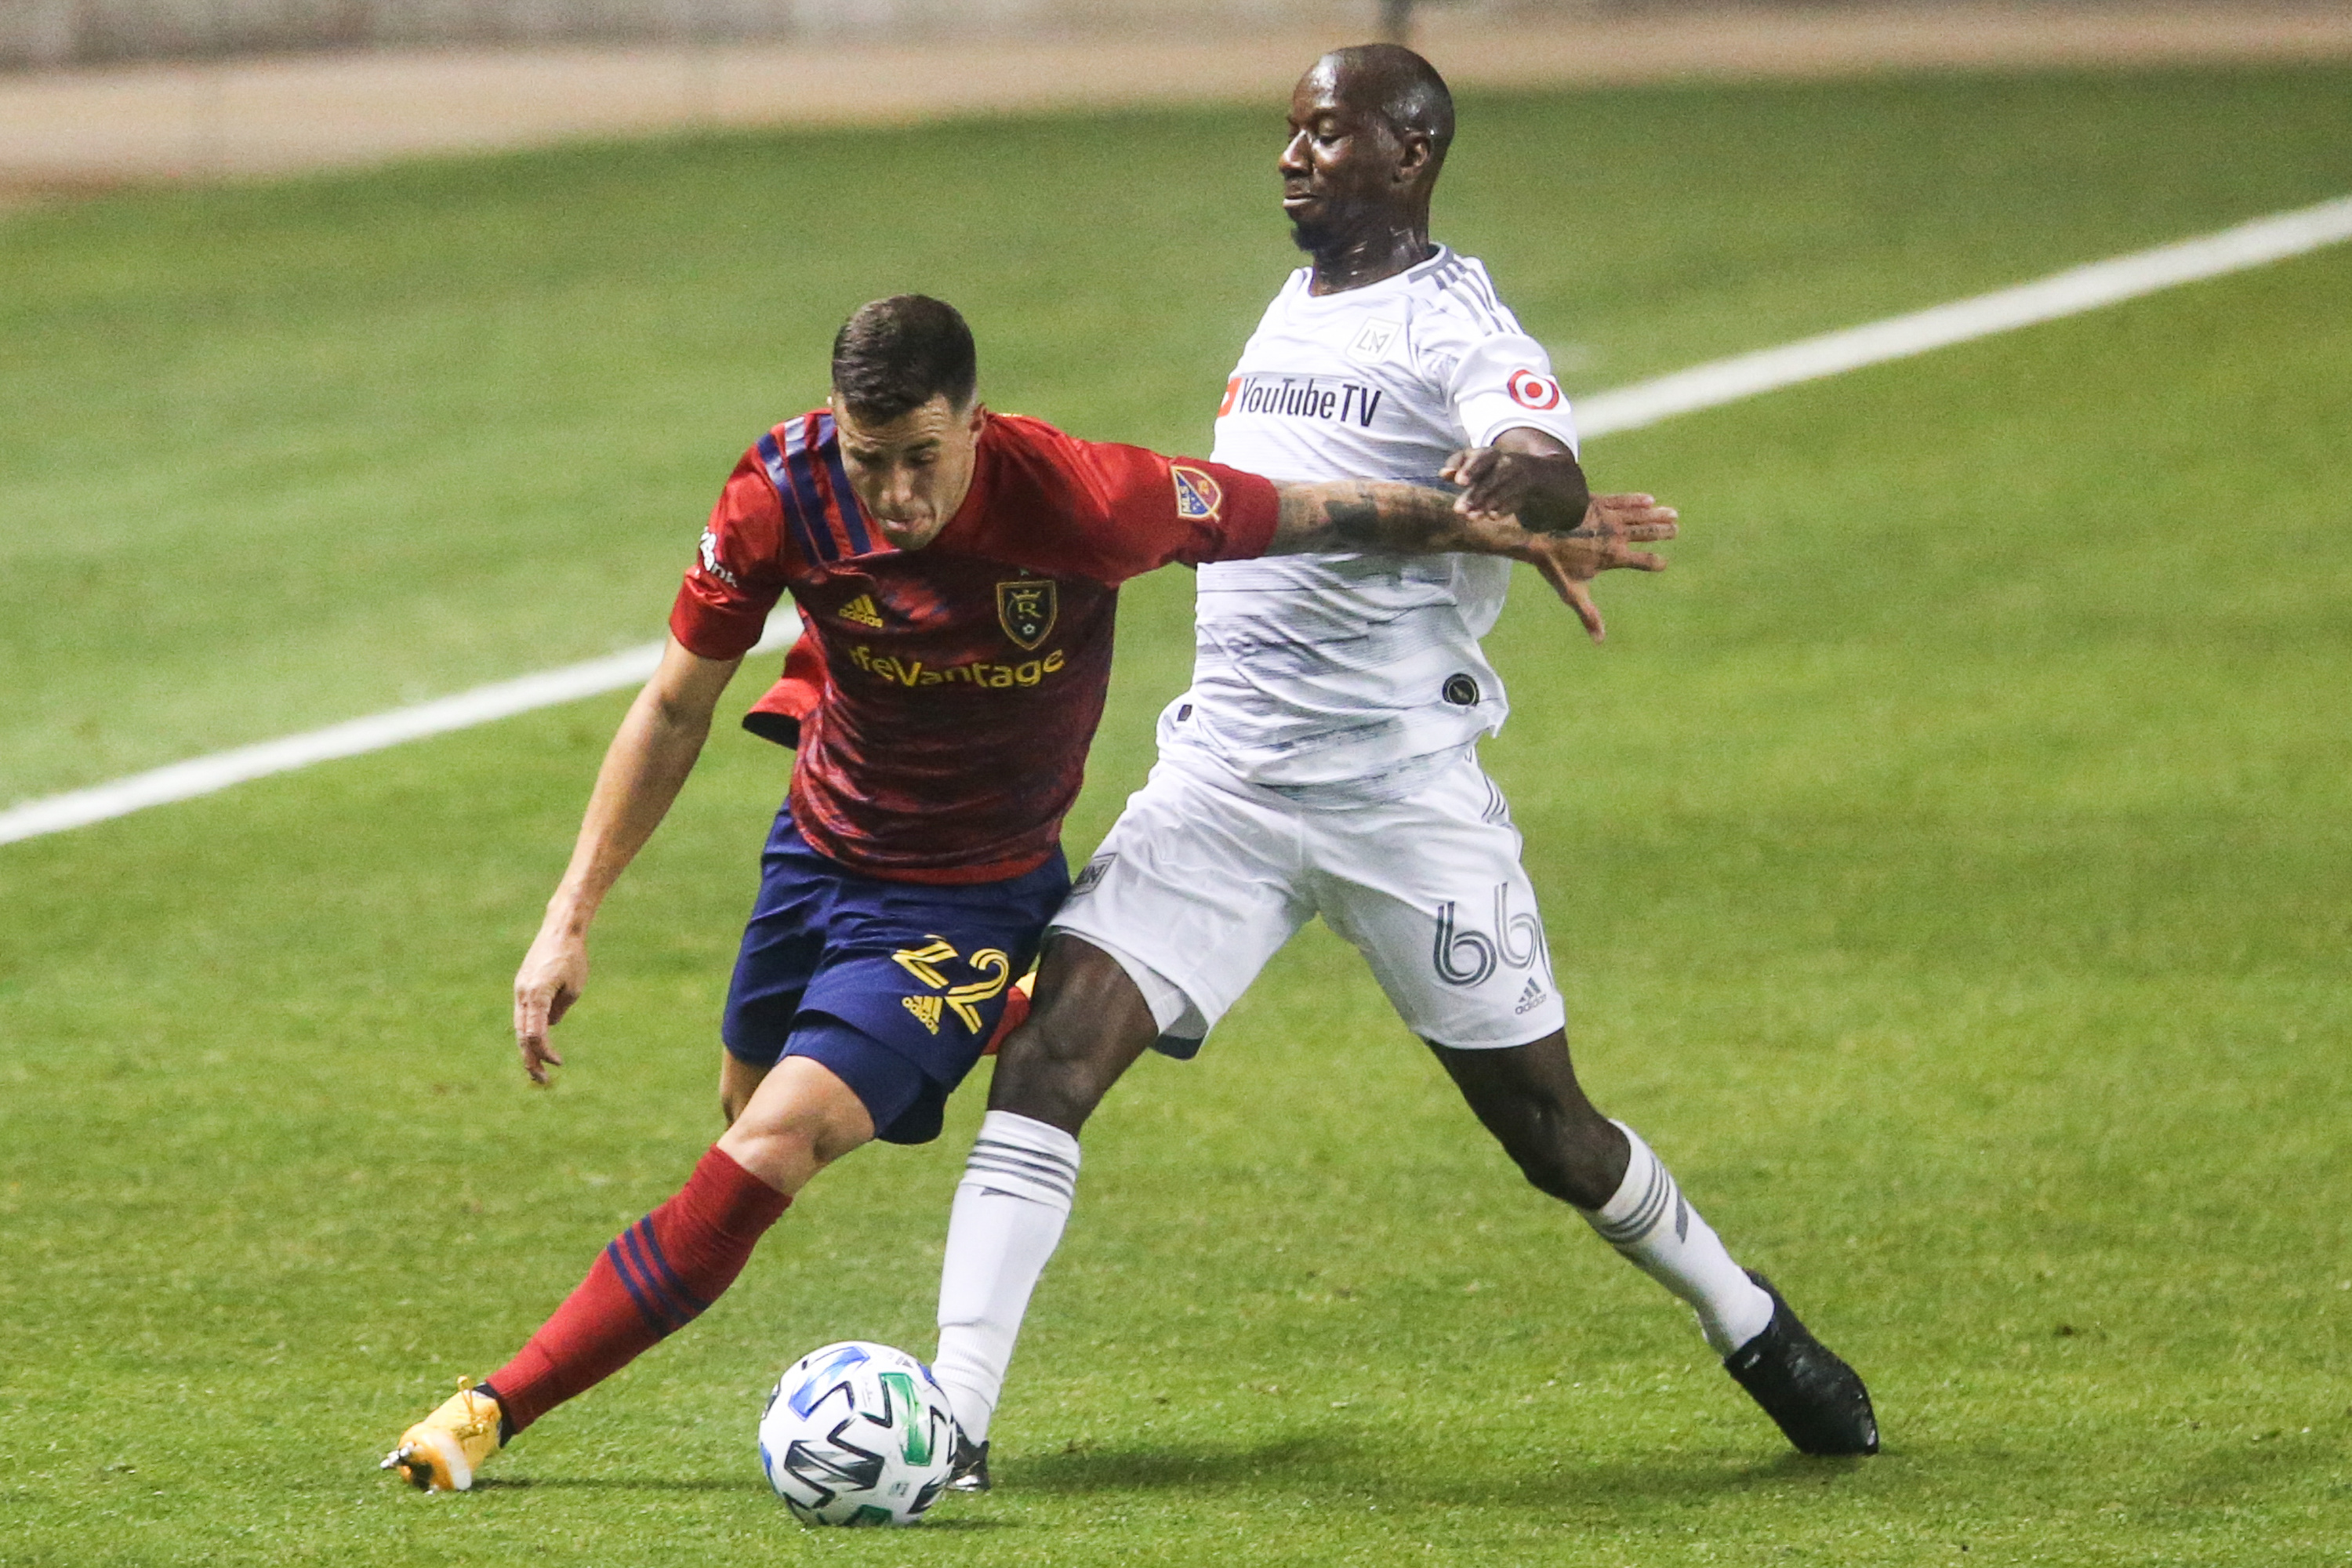 Real Salt Lake defender Aaron Herrera (22) dribbles against Los Angeles FC forward Bradley Wright-Phillips (66) during a MLS soccer game at Rio Tinto Stadium in Sandy on Sunday, Oct. 4, 2020.